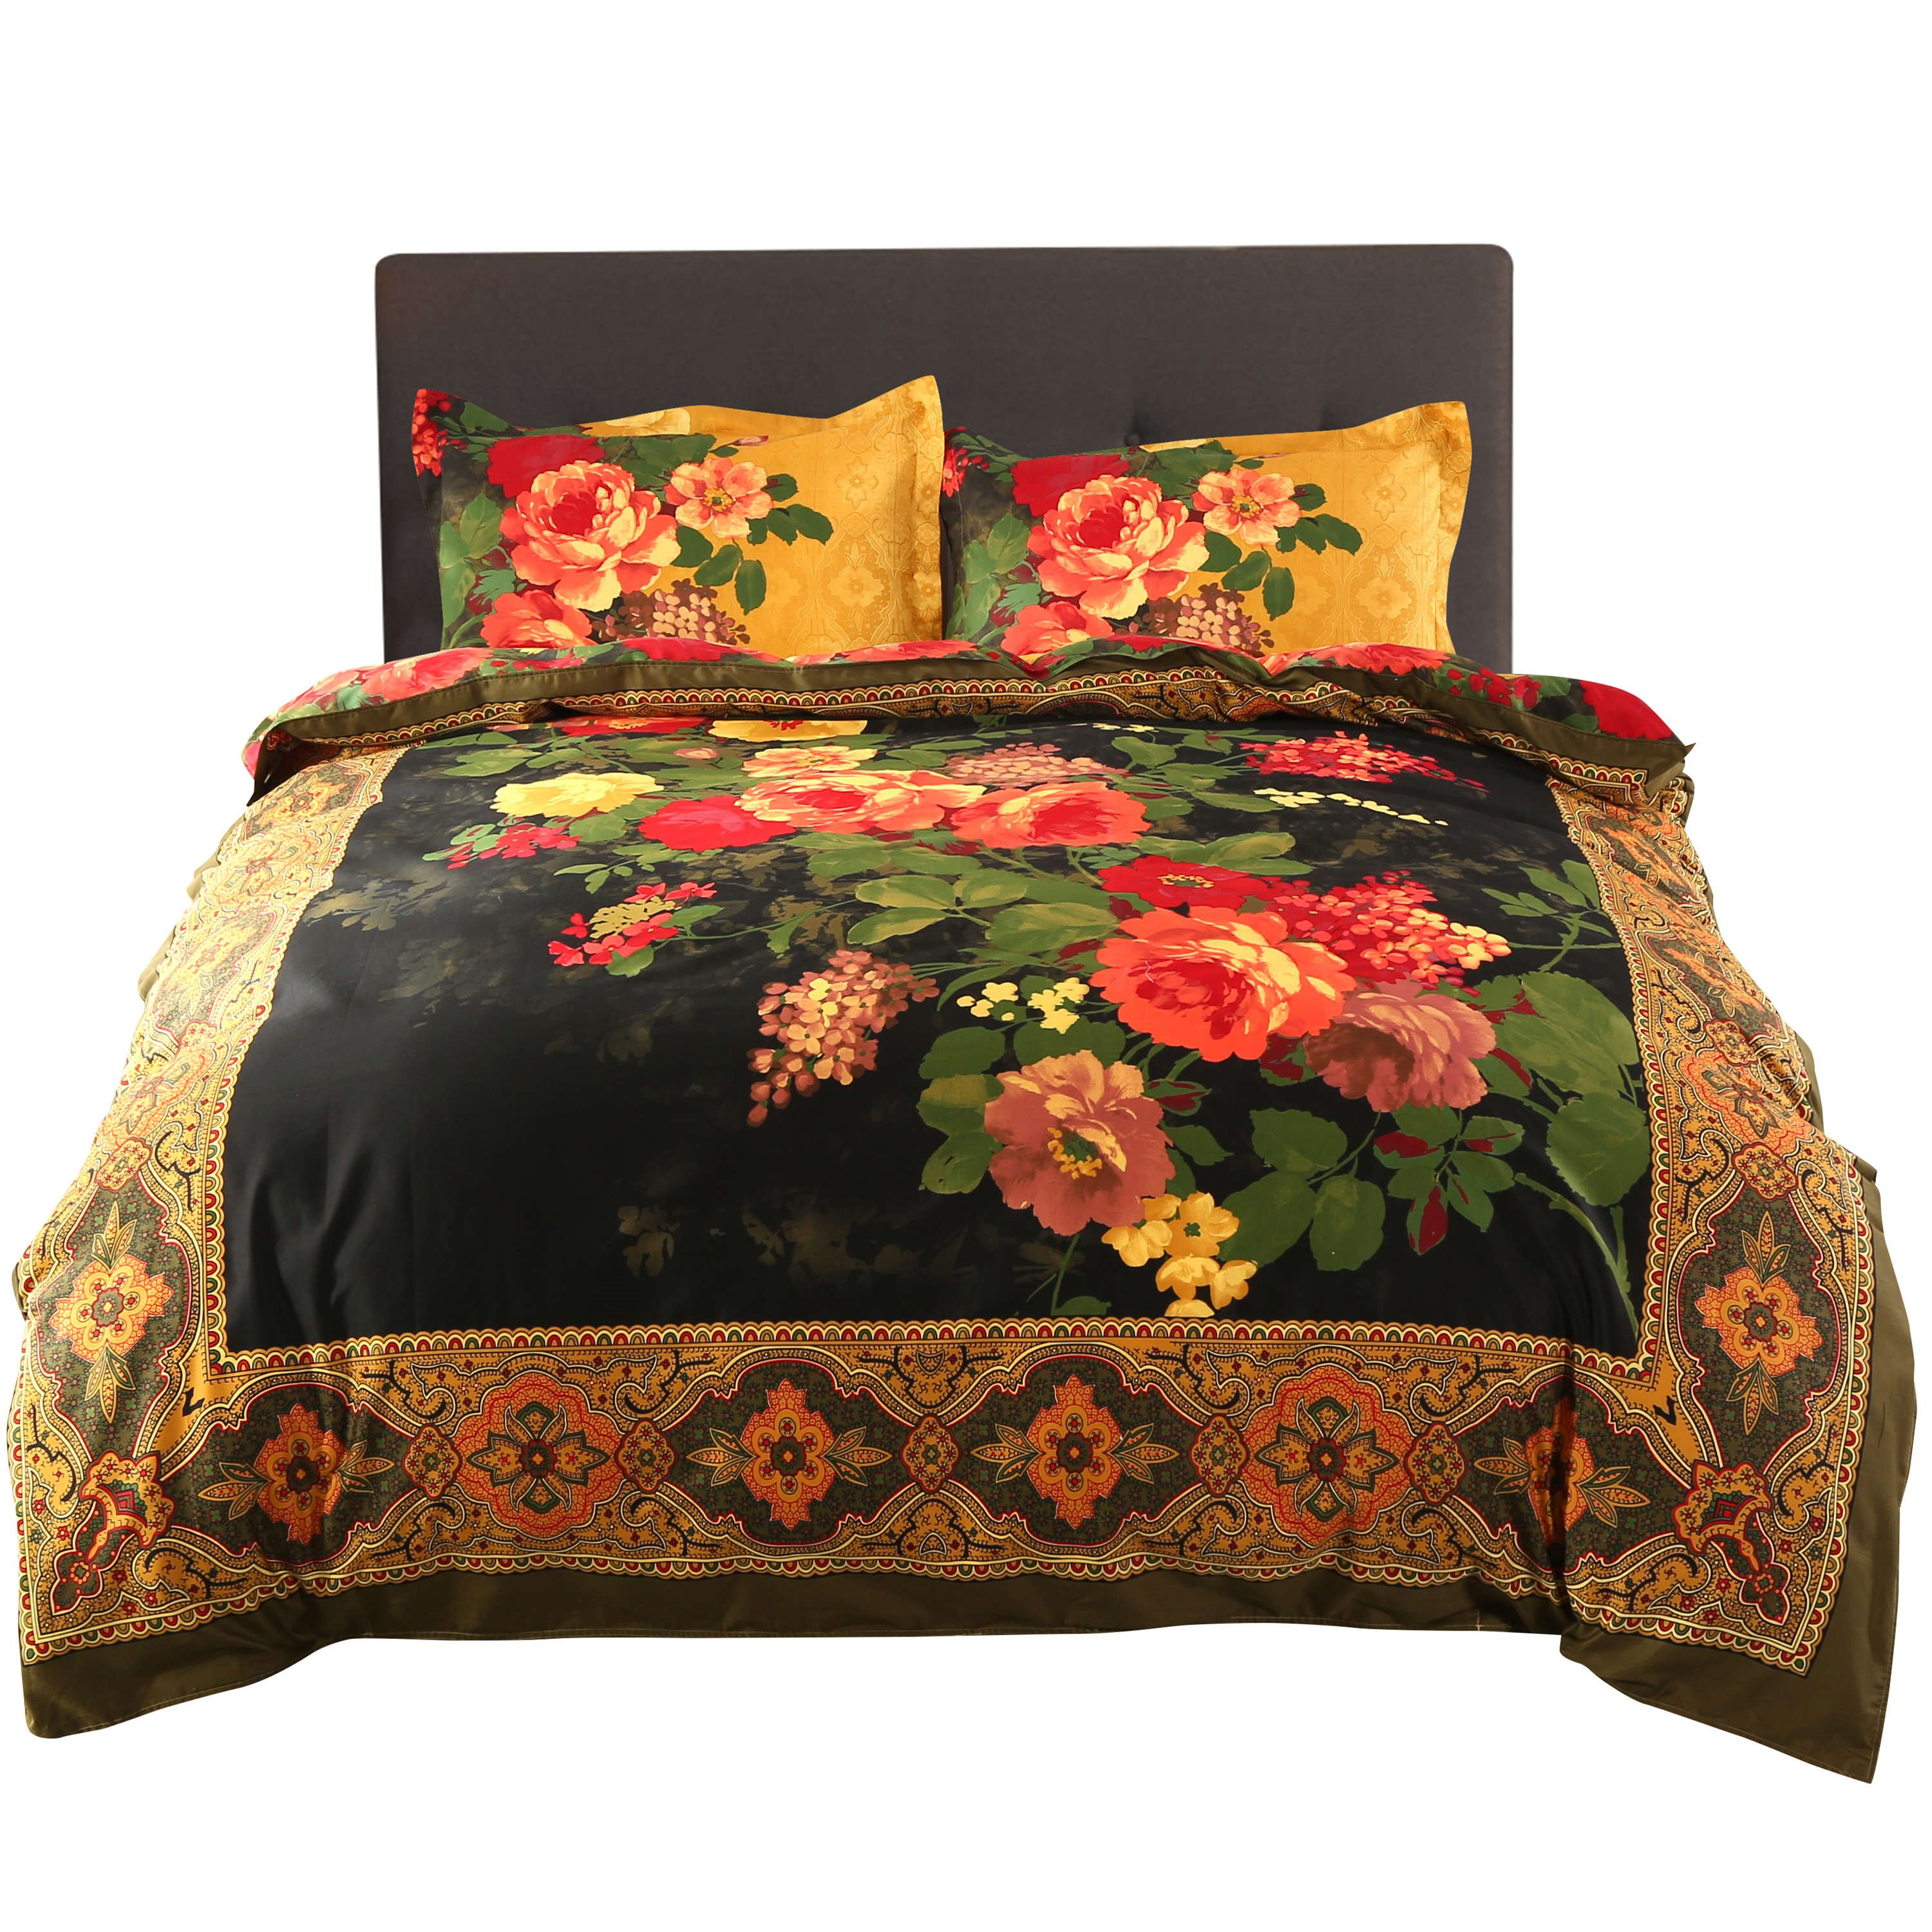 Painting | Bedding | Peony | Retro | Paint | Cover | Oil | Bed | 3D